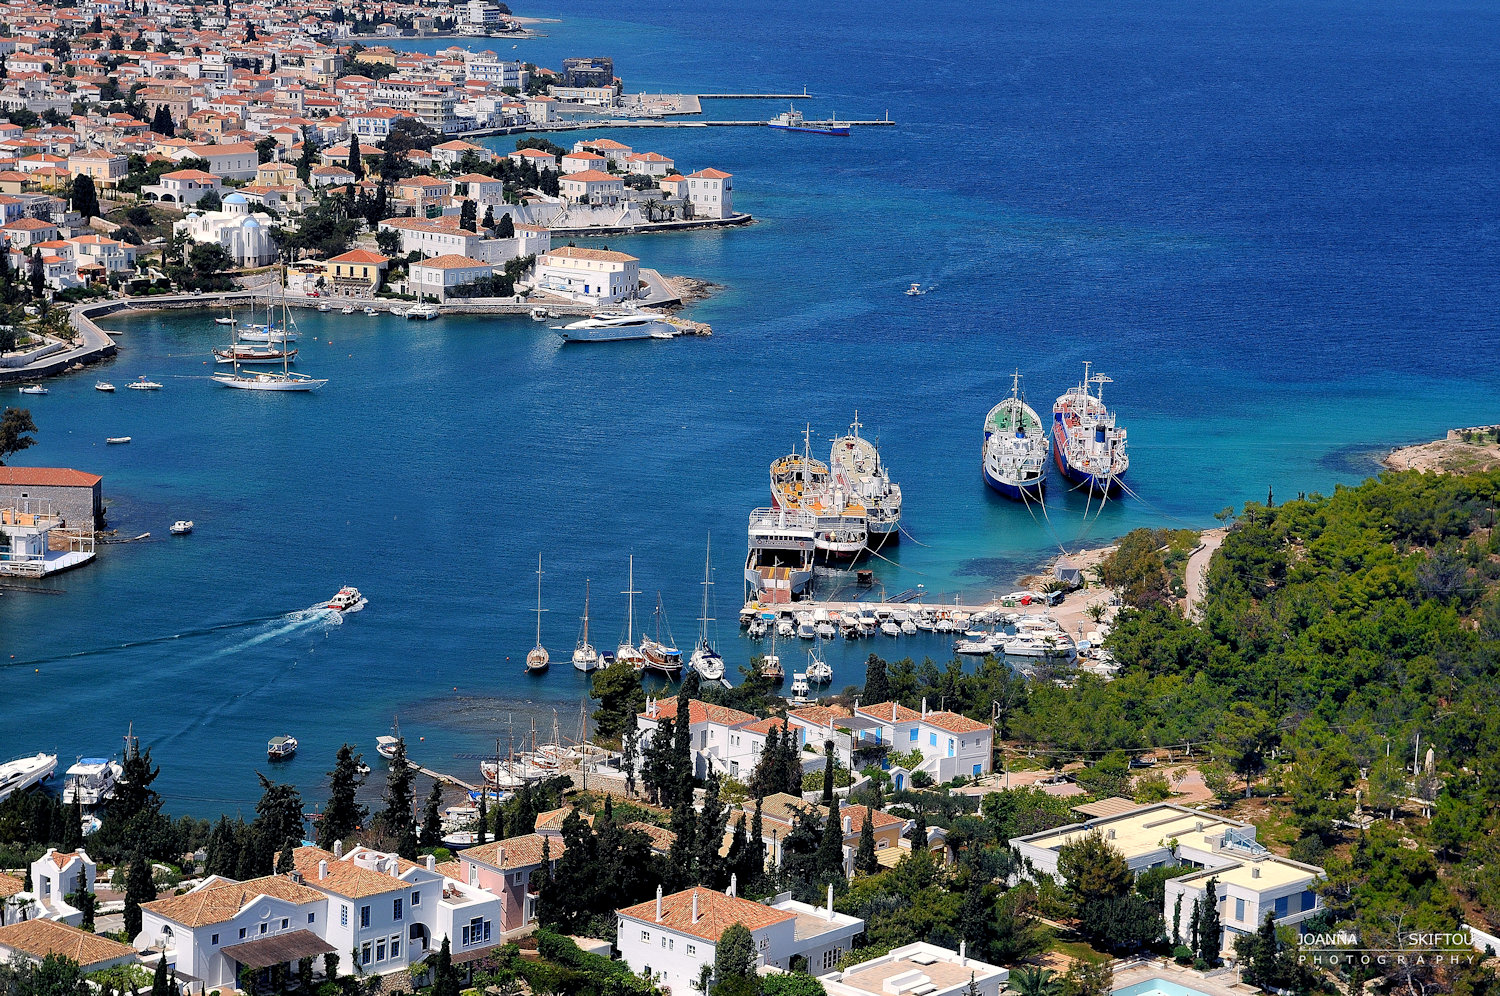 Aerial  photography by Joanna Skiftou, Spetses, Greece